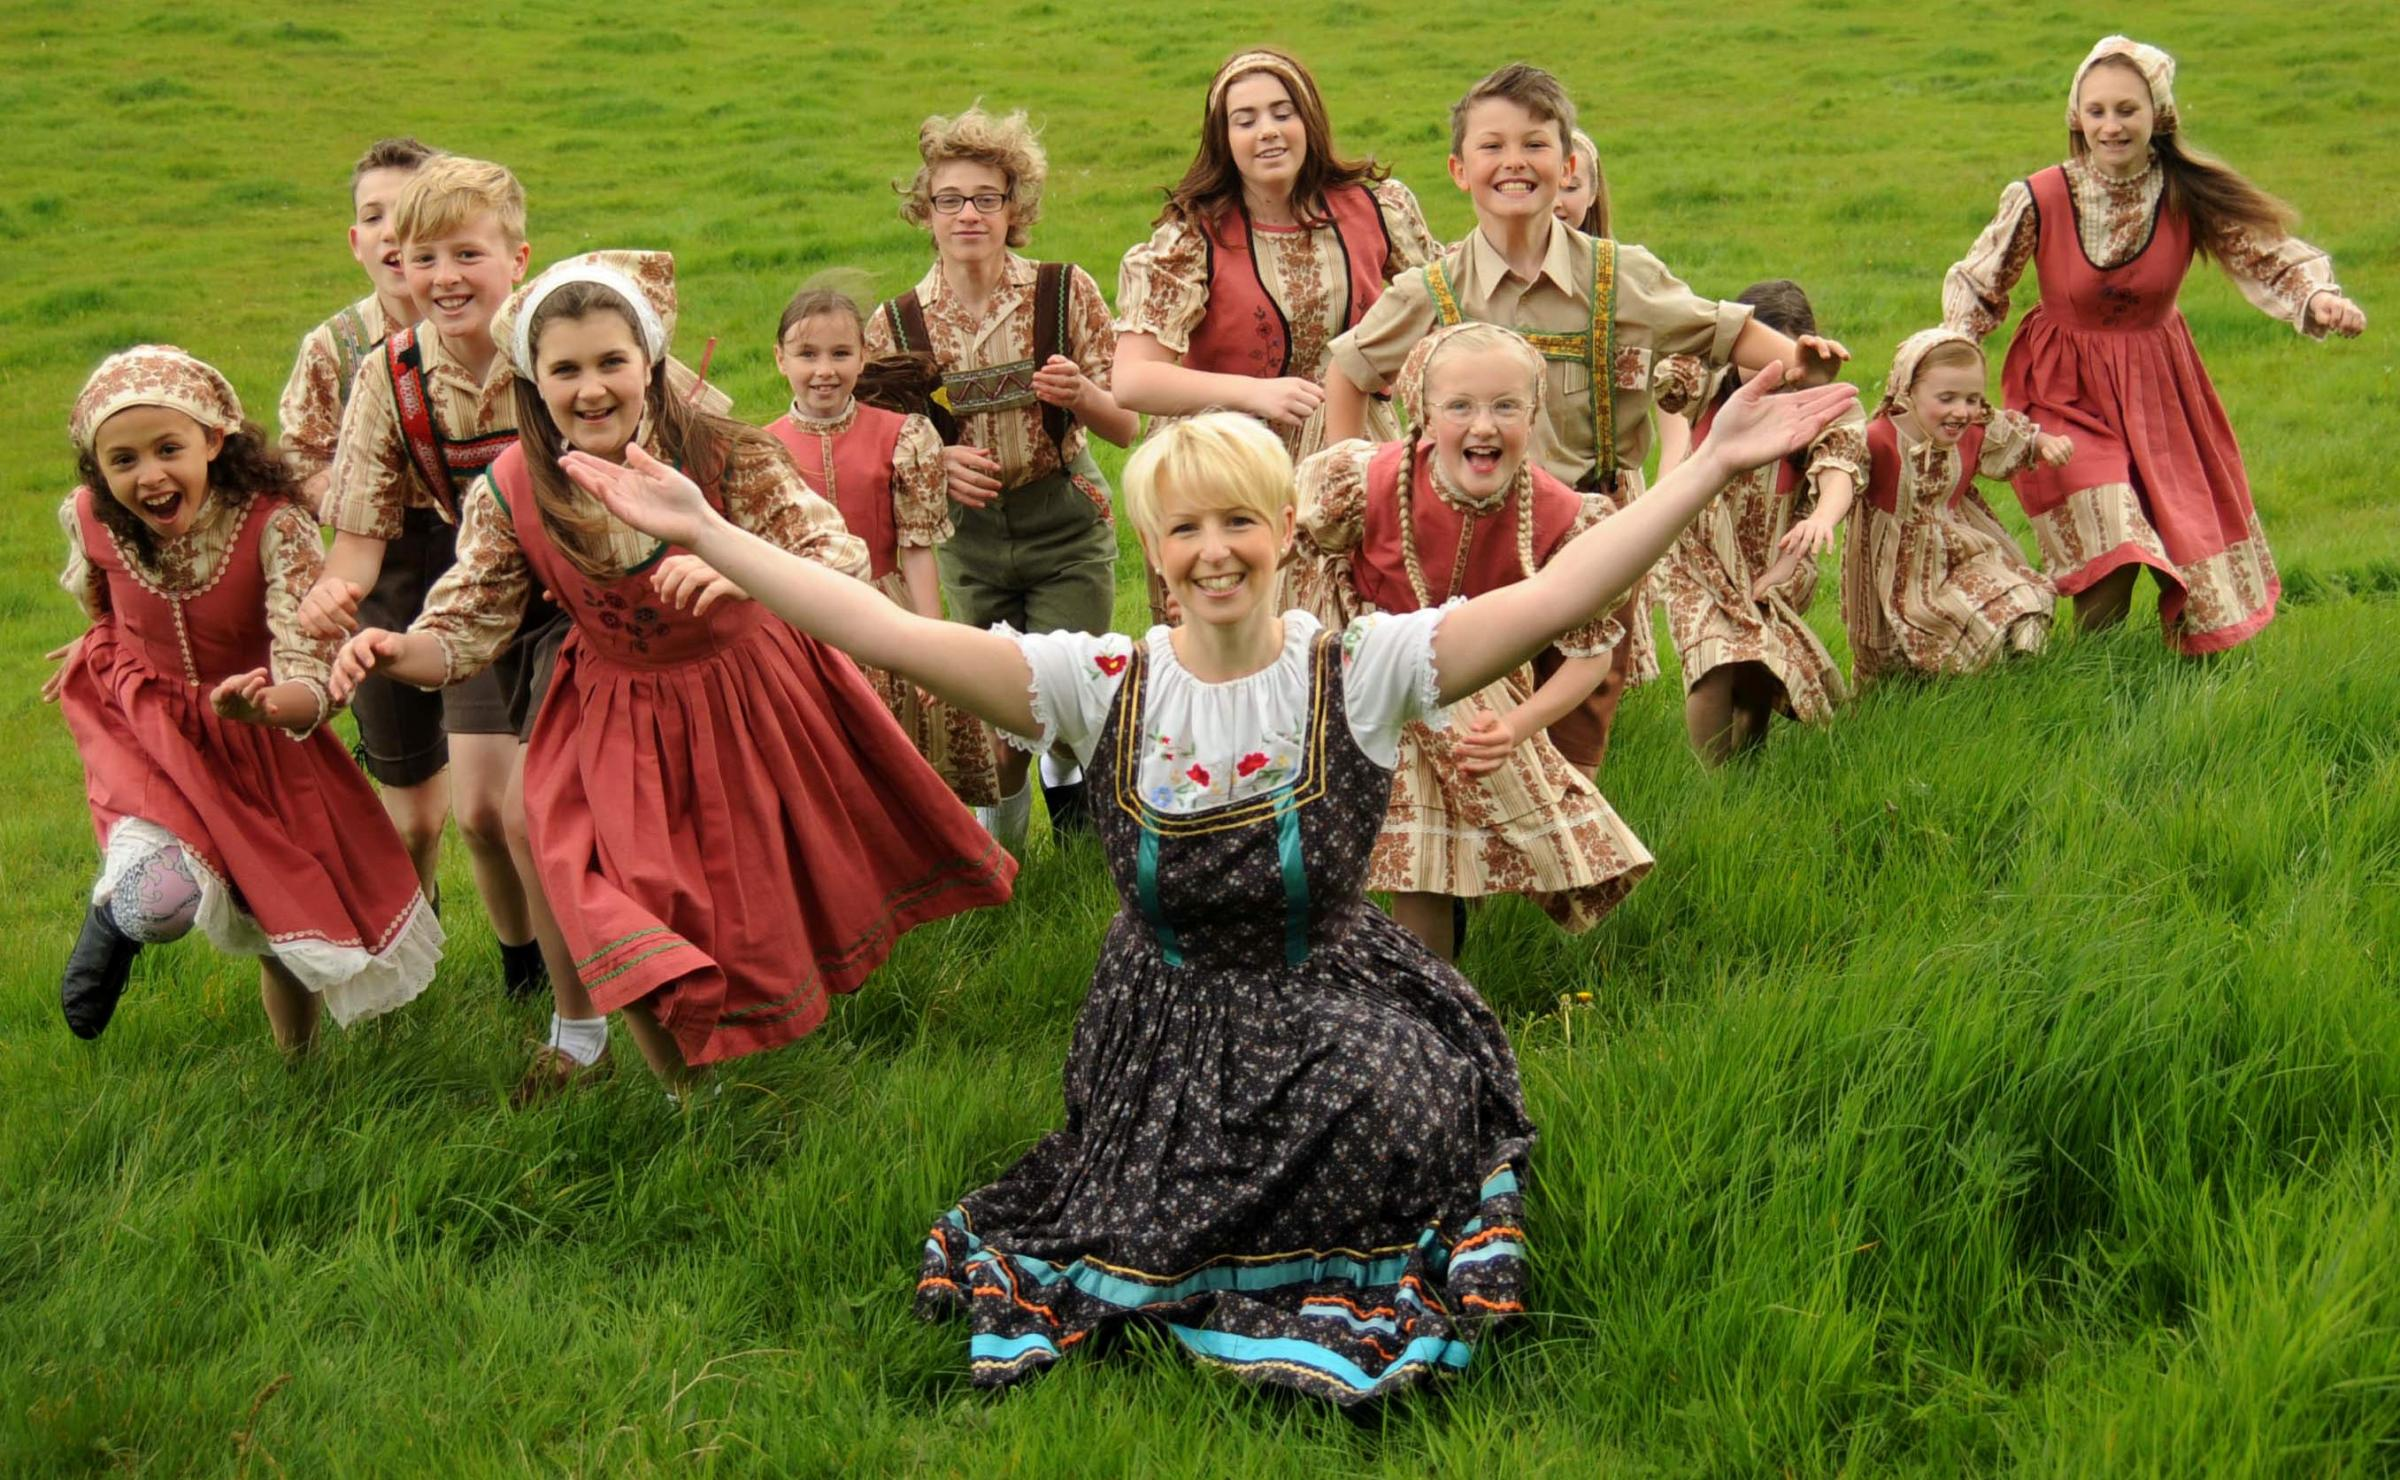 Brierley Hill will be alive with the Sound of Music